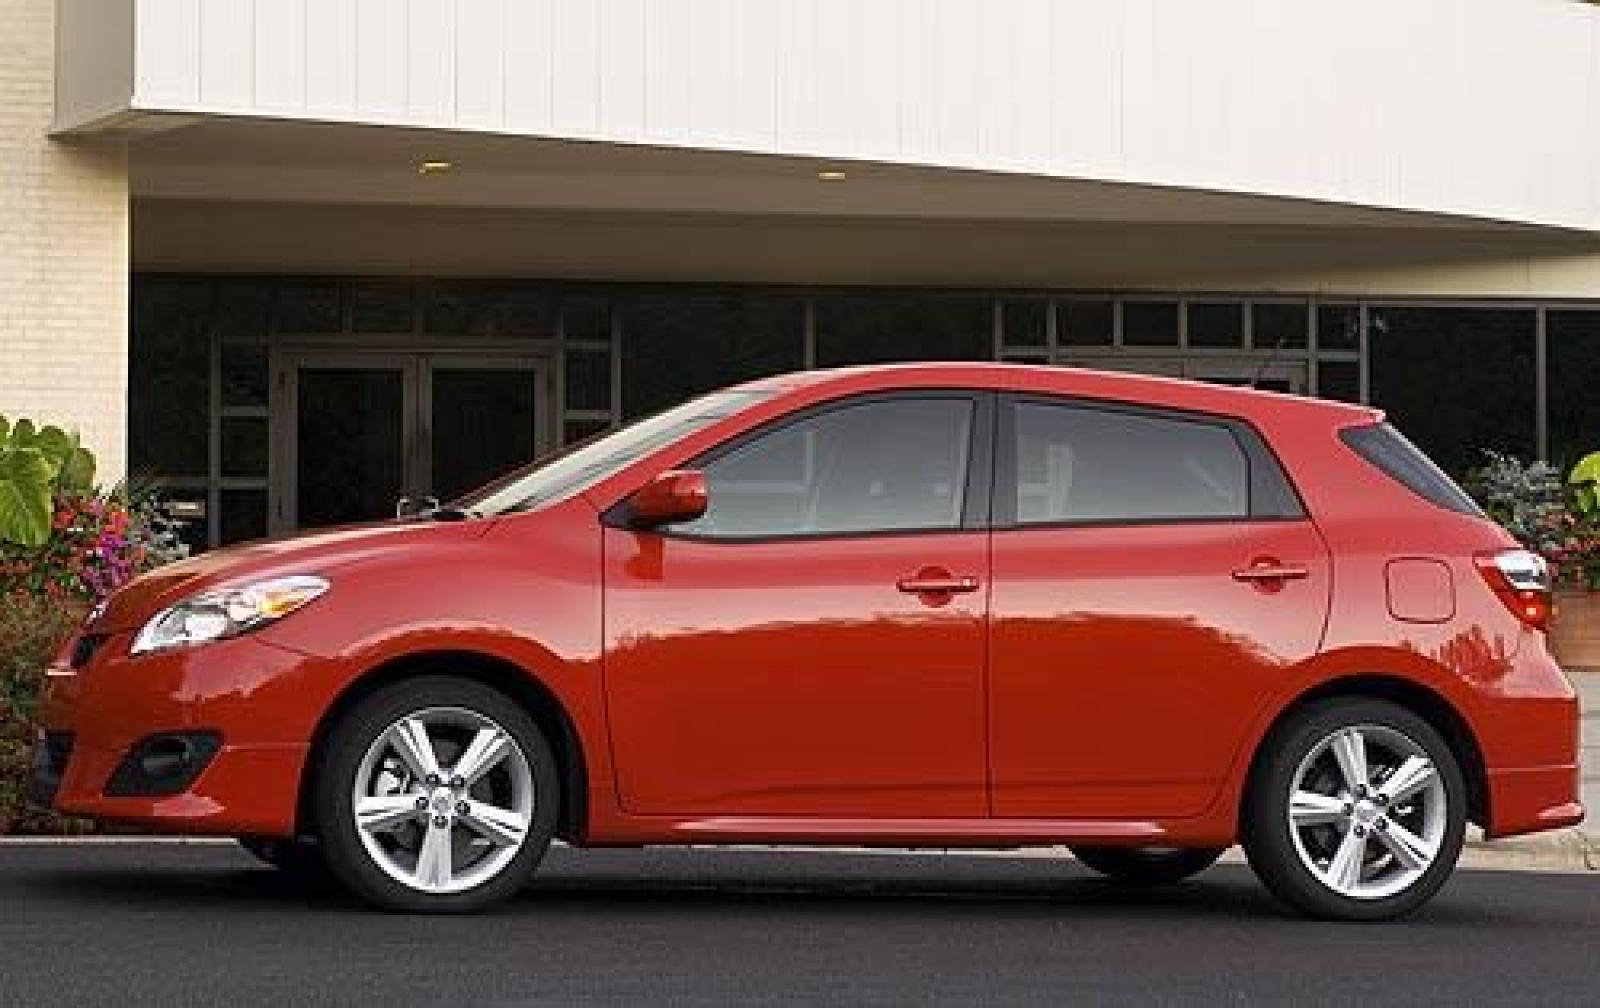 2010 toyota matrix information and photos zombiedrive. Black Bedroom Furniture Sets. Home Design Ideas